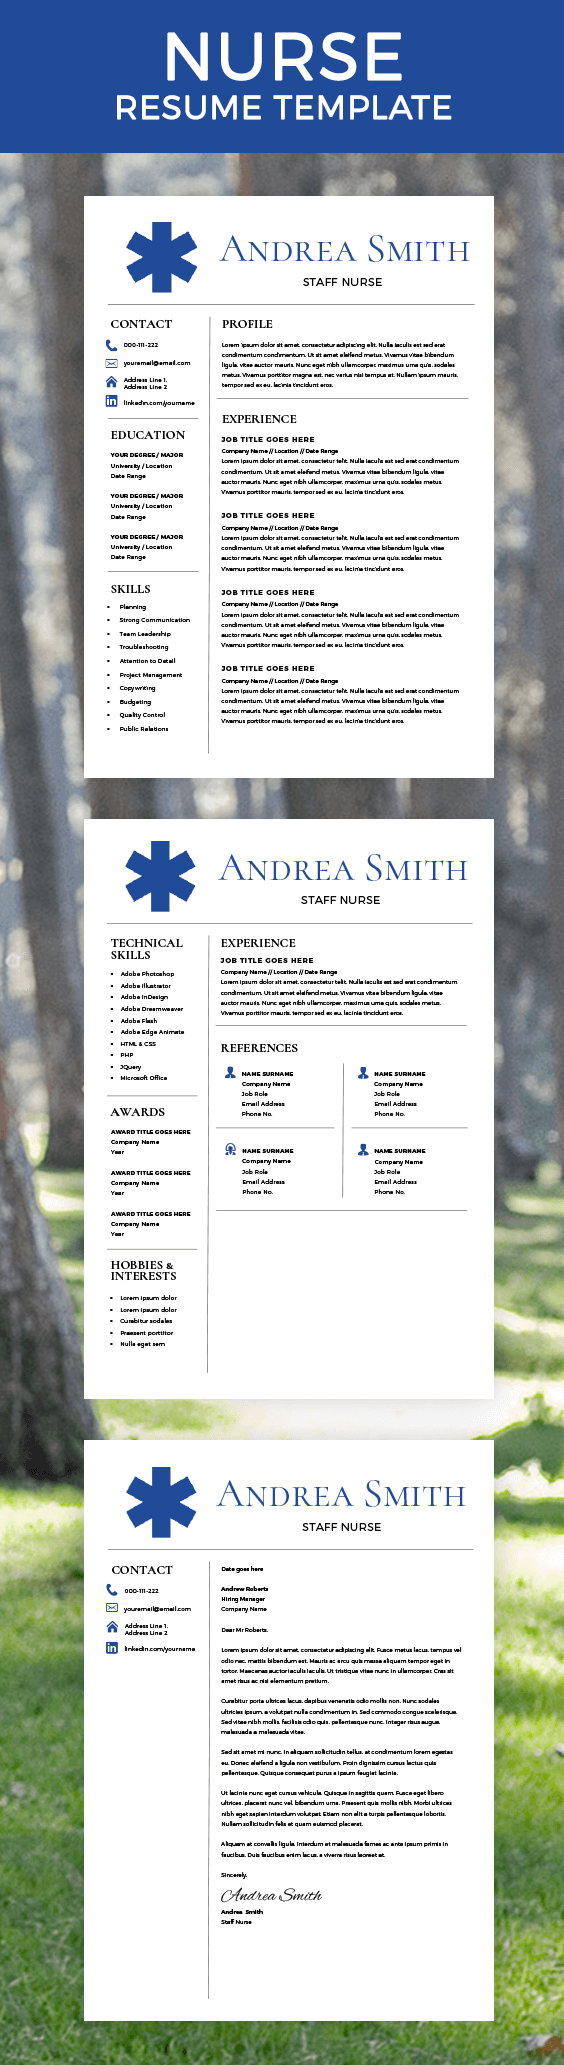 Resume Template Free Download In Word Nurse Resume Template  Nurse Staff  Top Resume Templates  Cv .